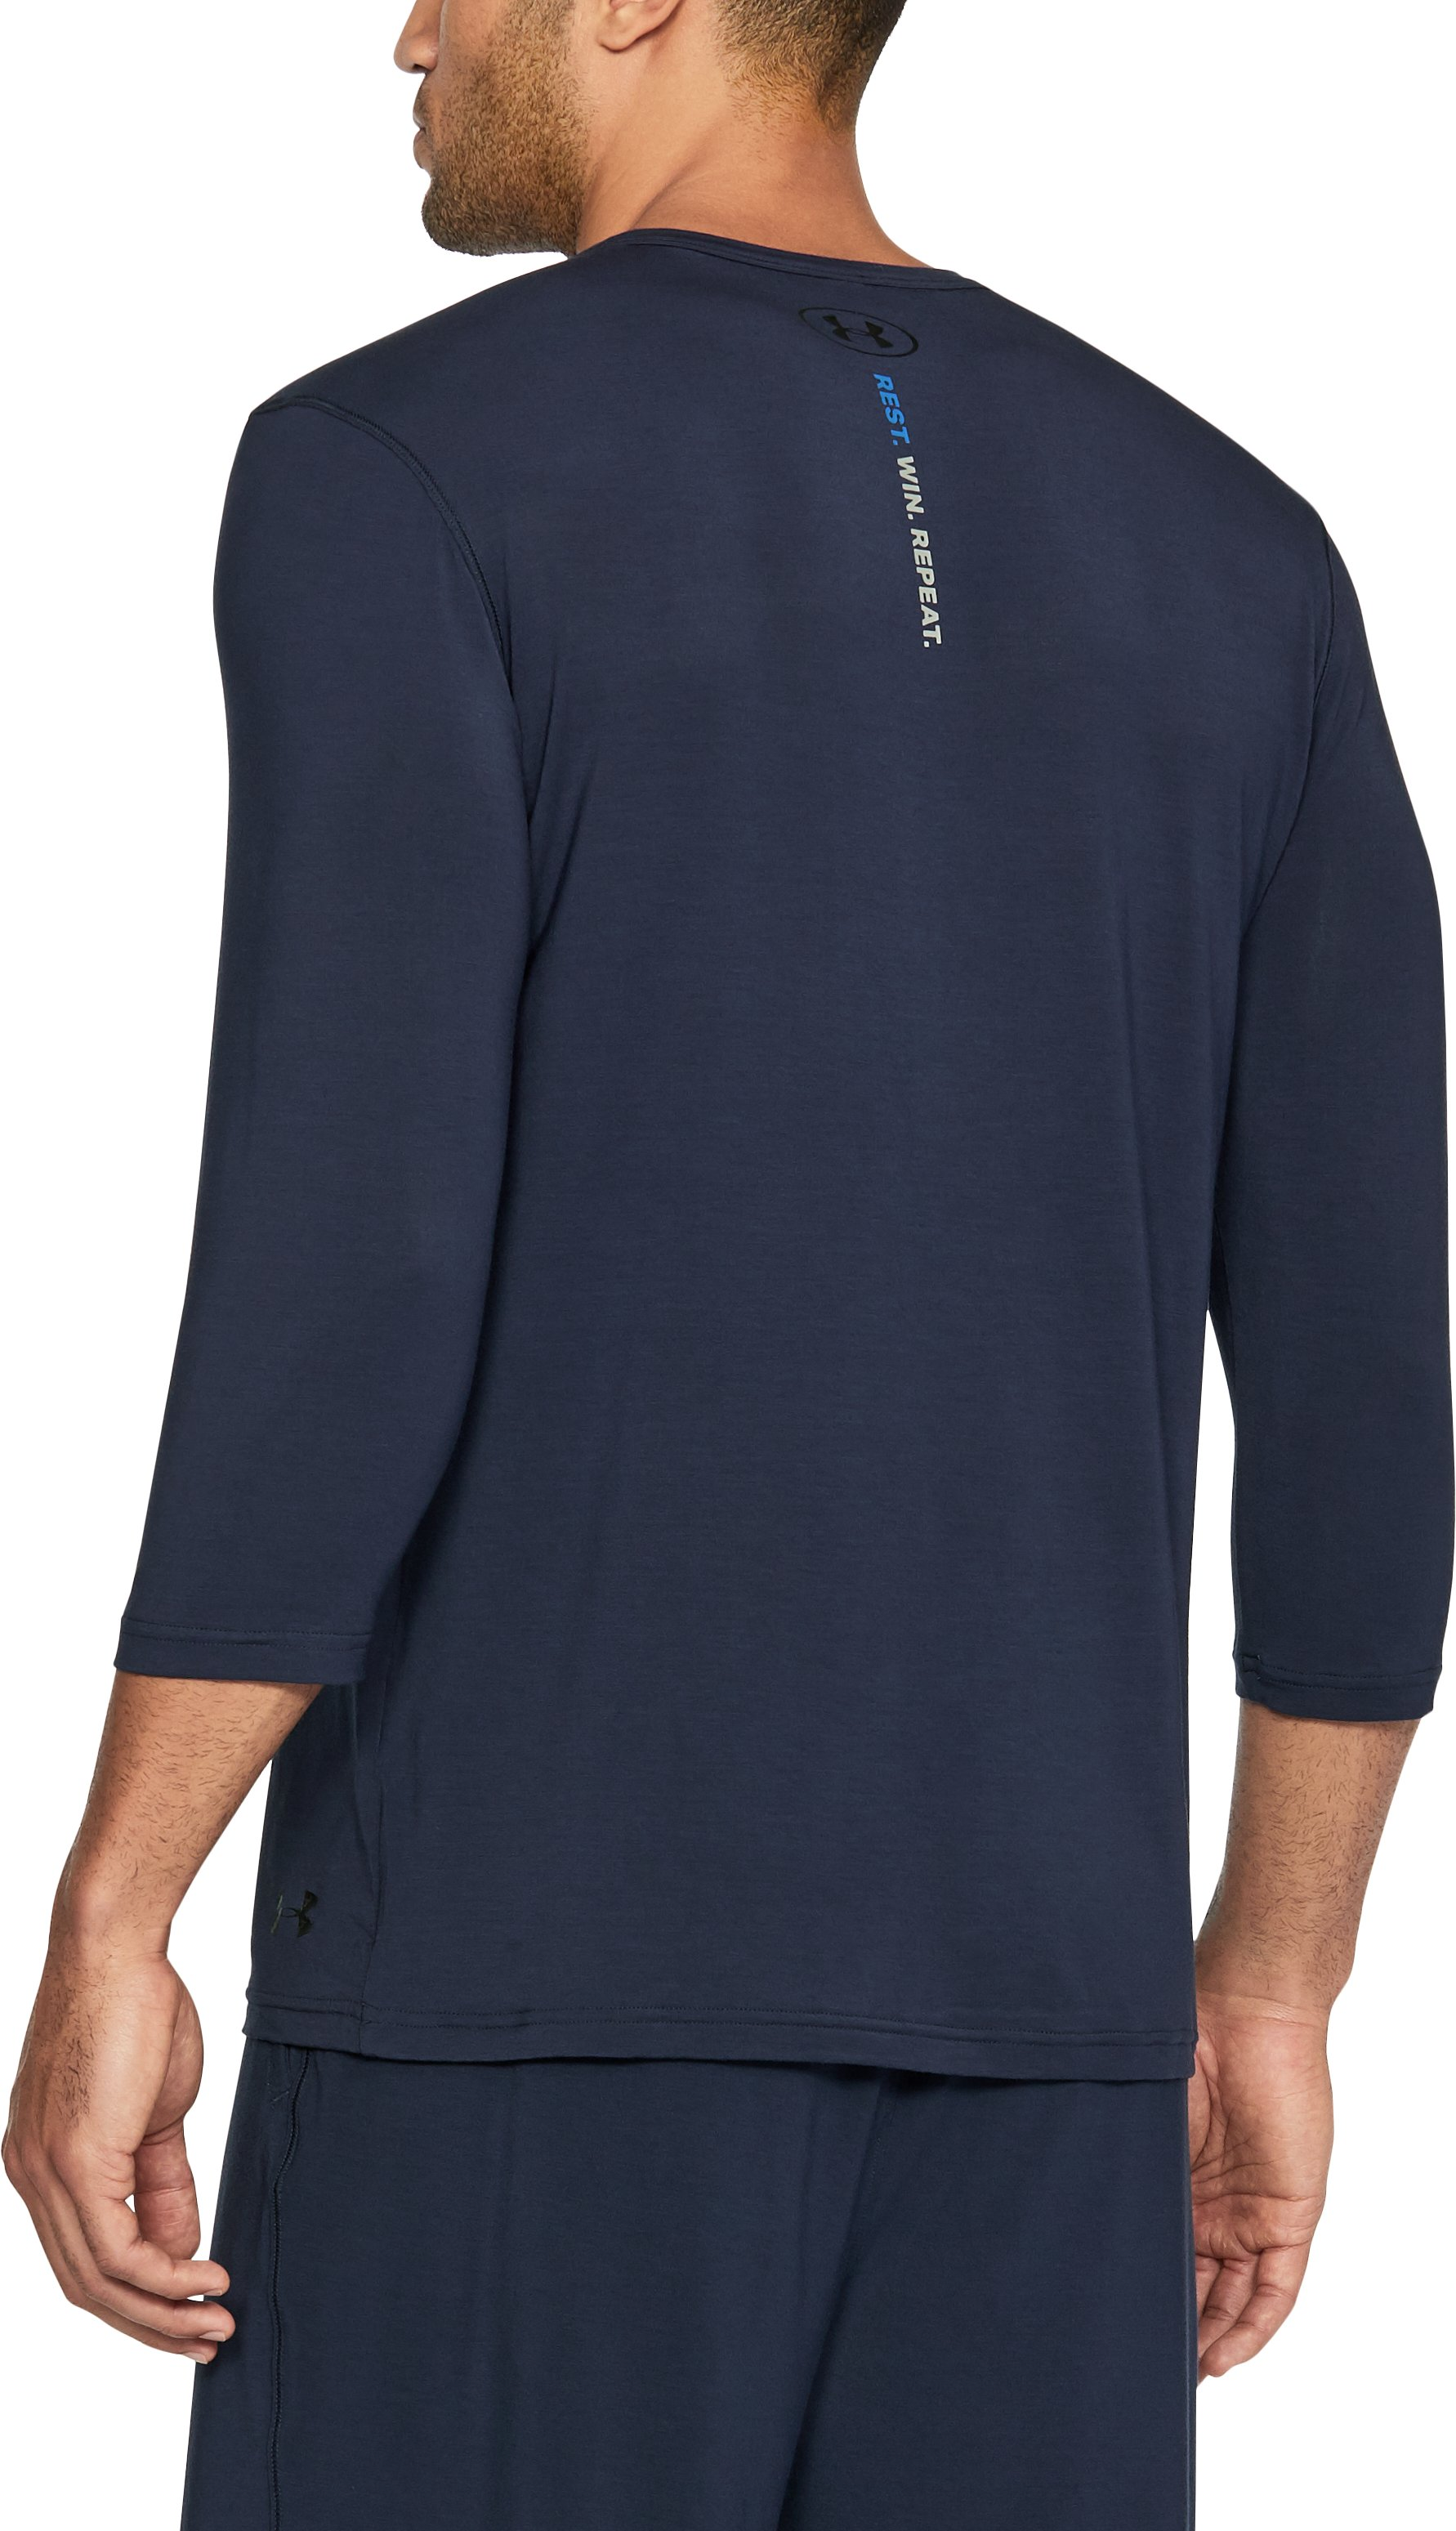 Men's Athlete Recovery Sleepwear Henley, Midnight Navy, undefined